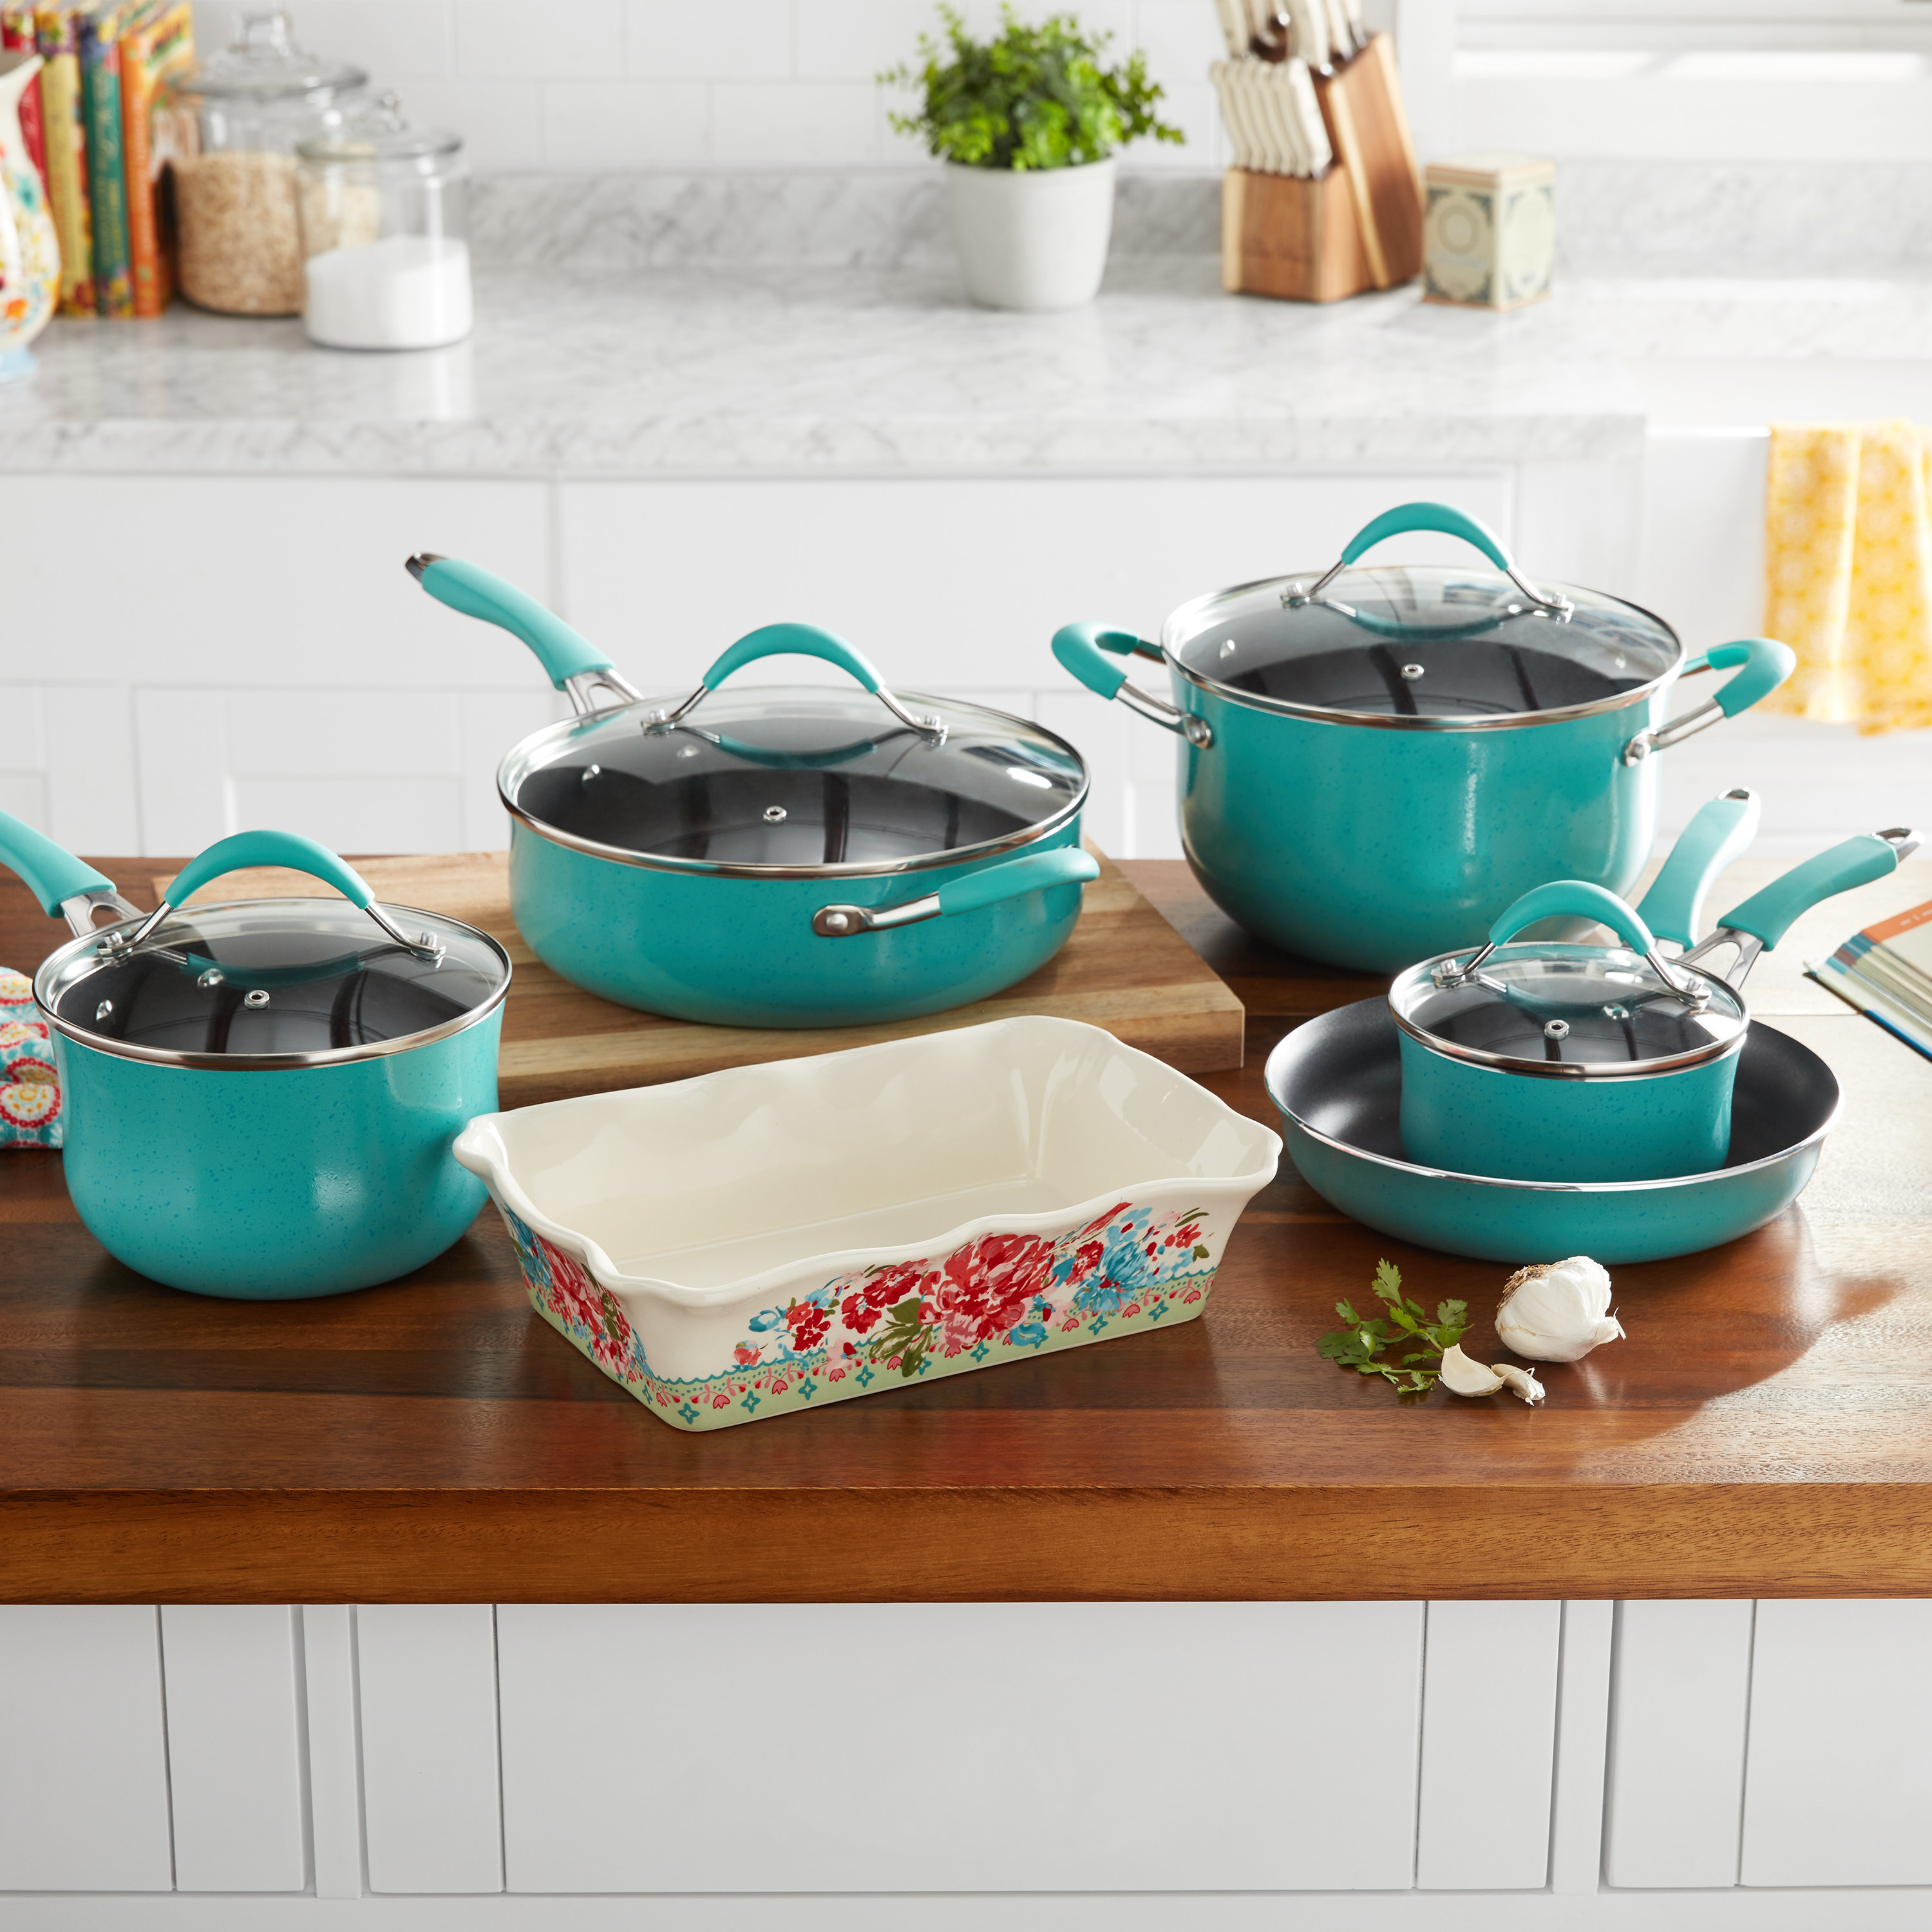 turquoise pots and pans and a white & floral casserole dish